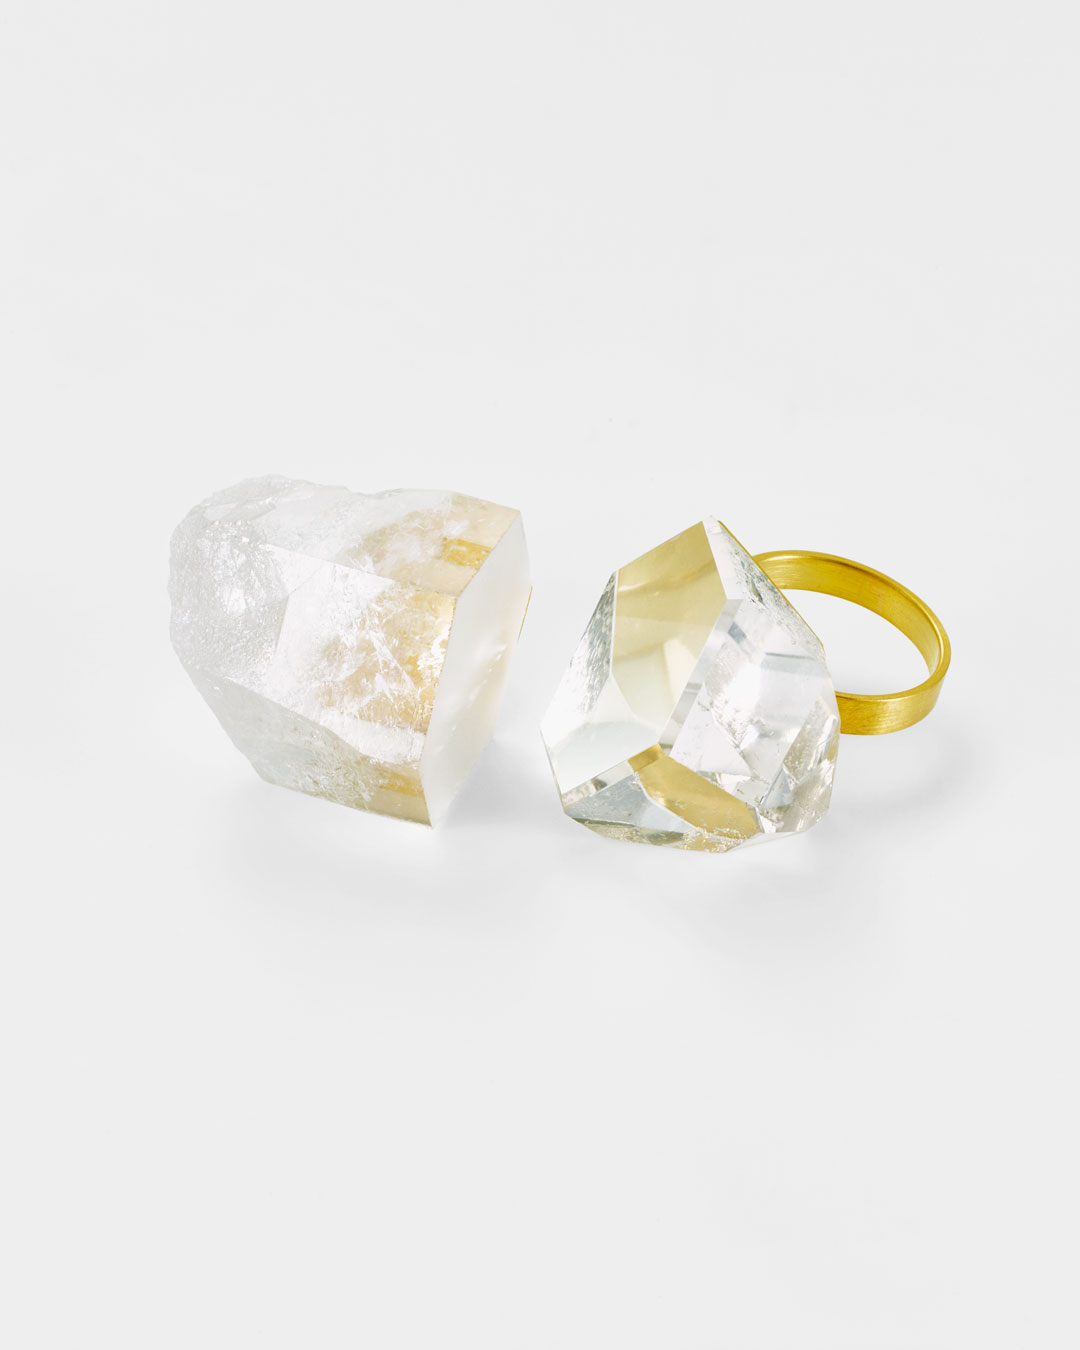 Etsuko Sonobe, untitled, 2017, ring; 20ct gold, rock crystal, 50 x 35 x 25 mm, €2200